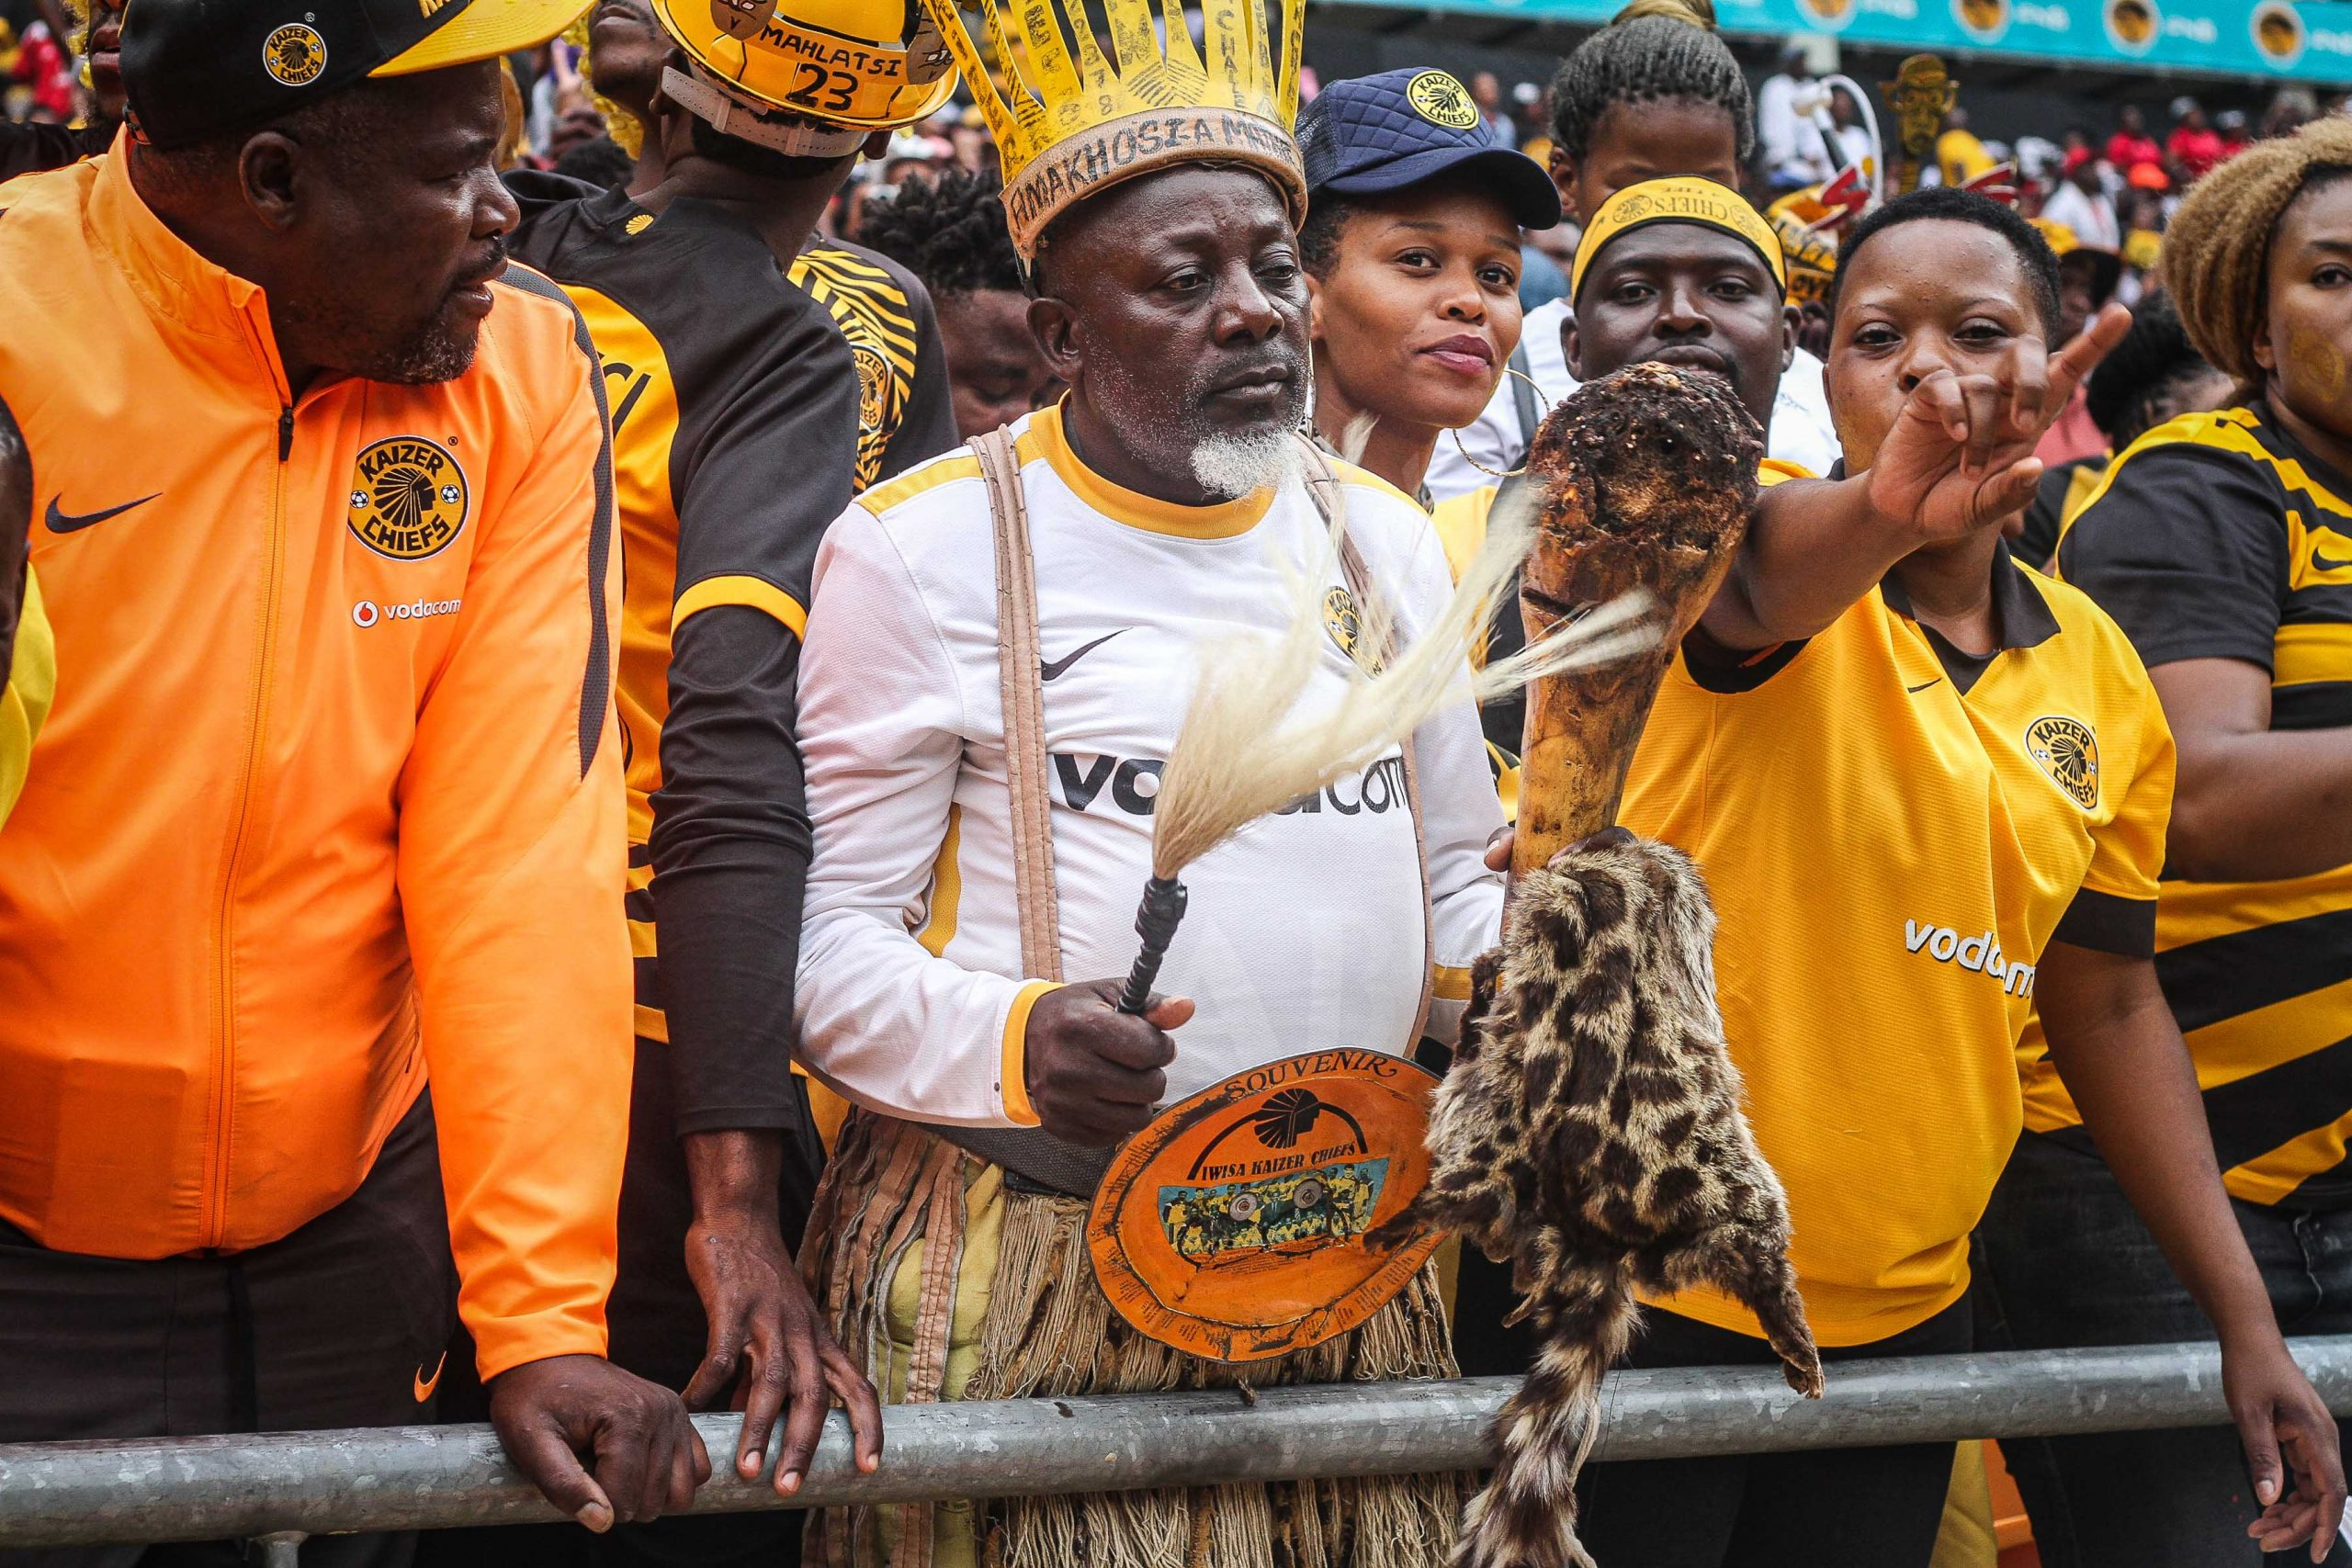 29 February 2020: Chiefs fans at the Soweto Derby called on the ancestors before kickoff. (Photograph by Lebo Edgar)